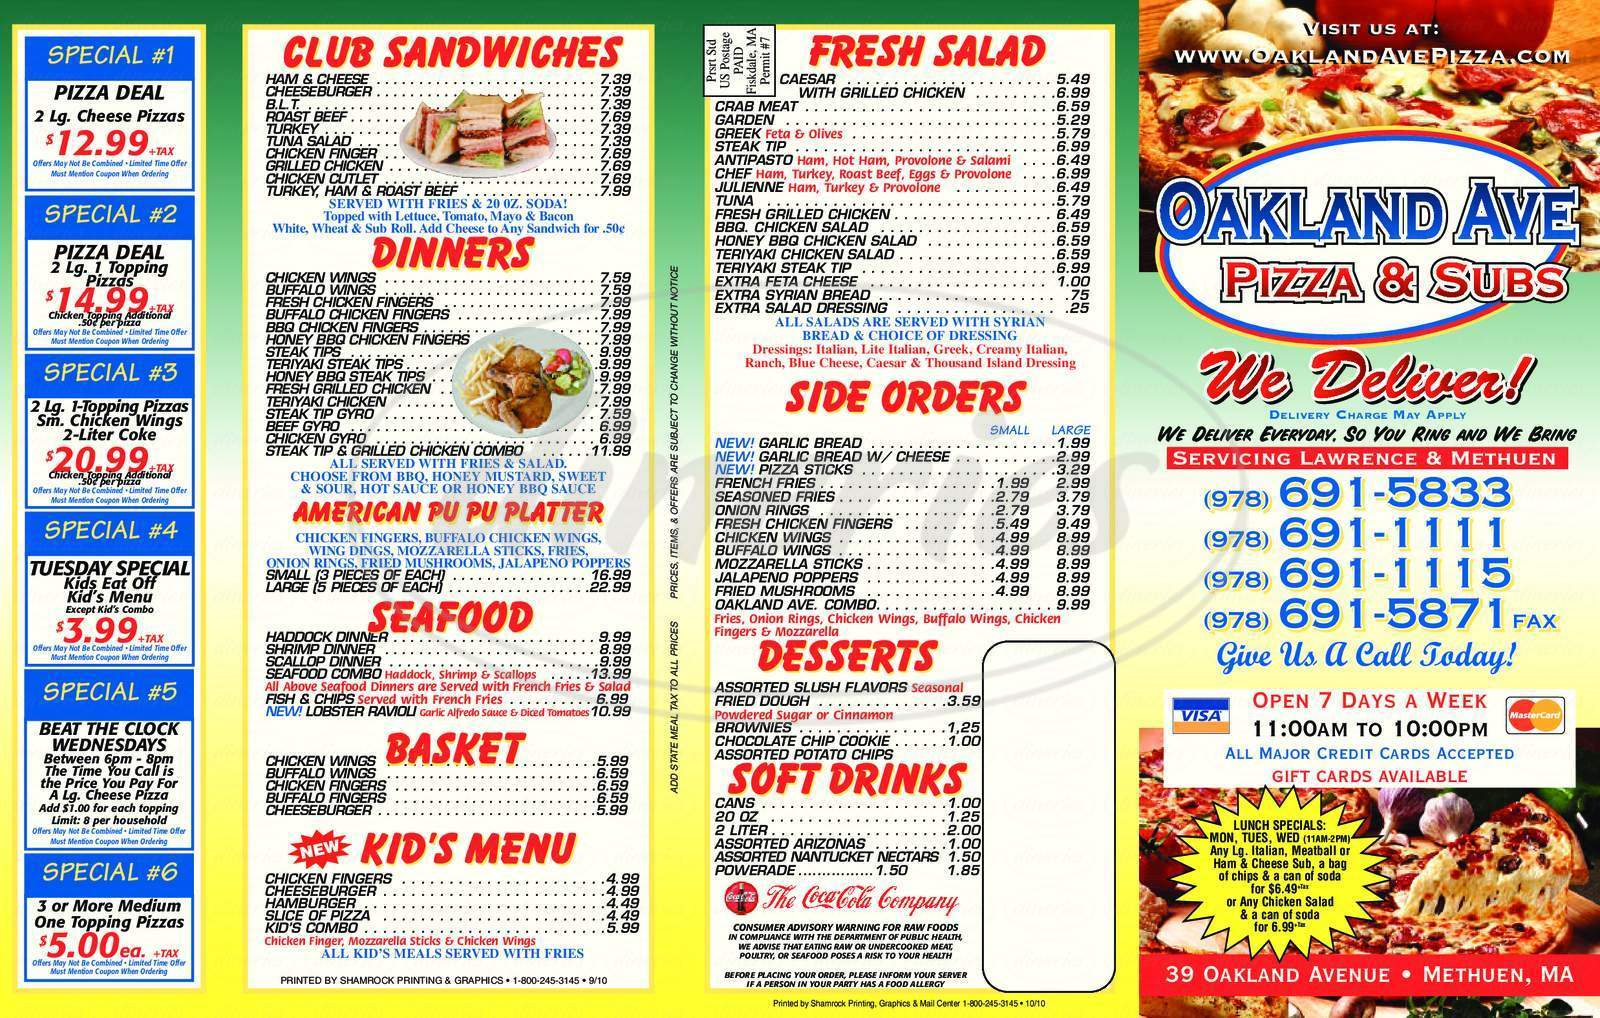 menu for Oakland Ave Pizza & Subs